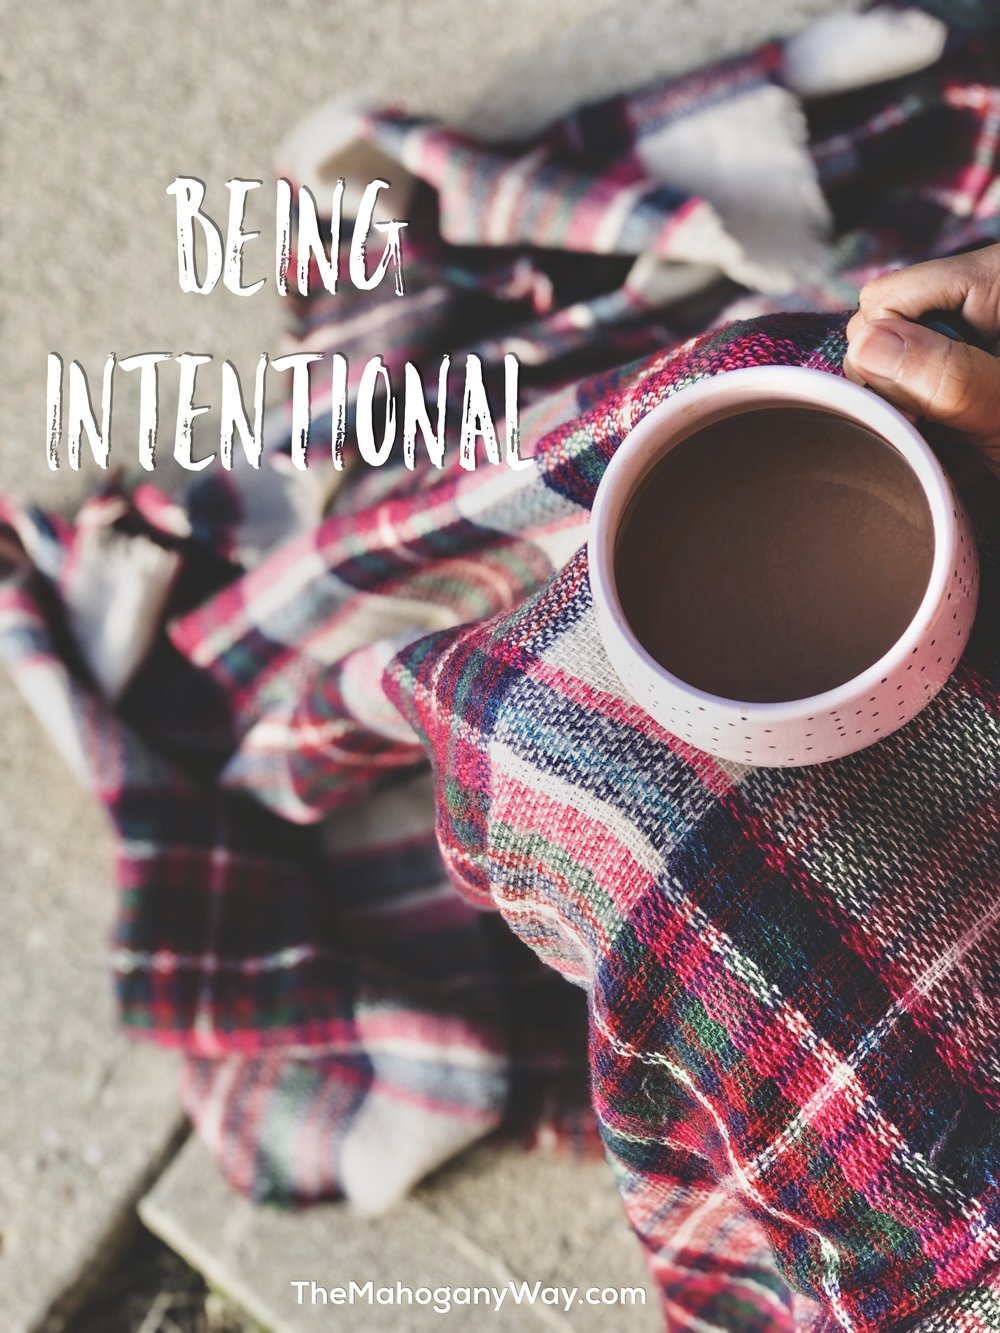 Being Intentional - TheMahoganyWay